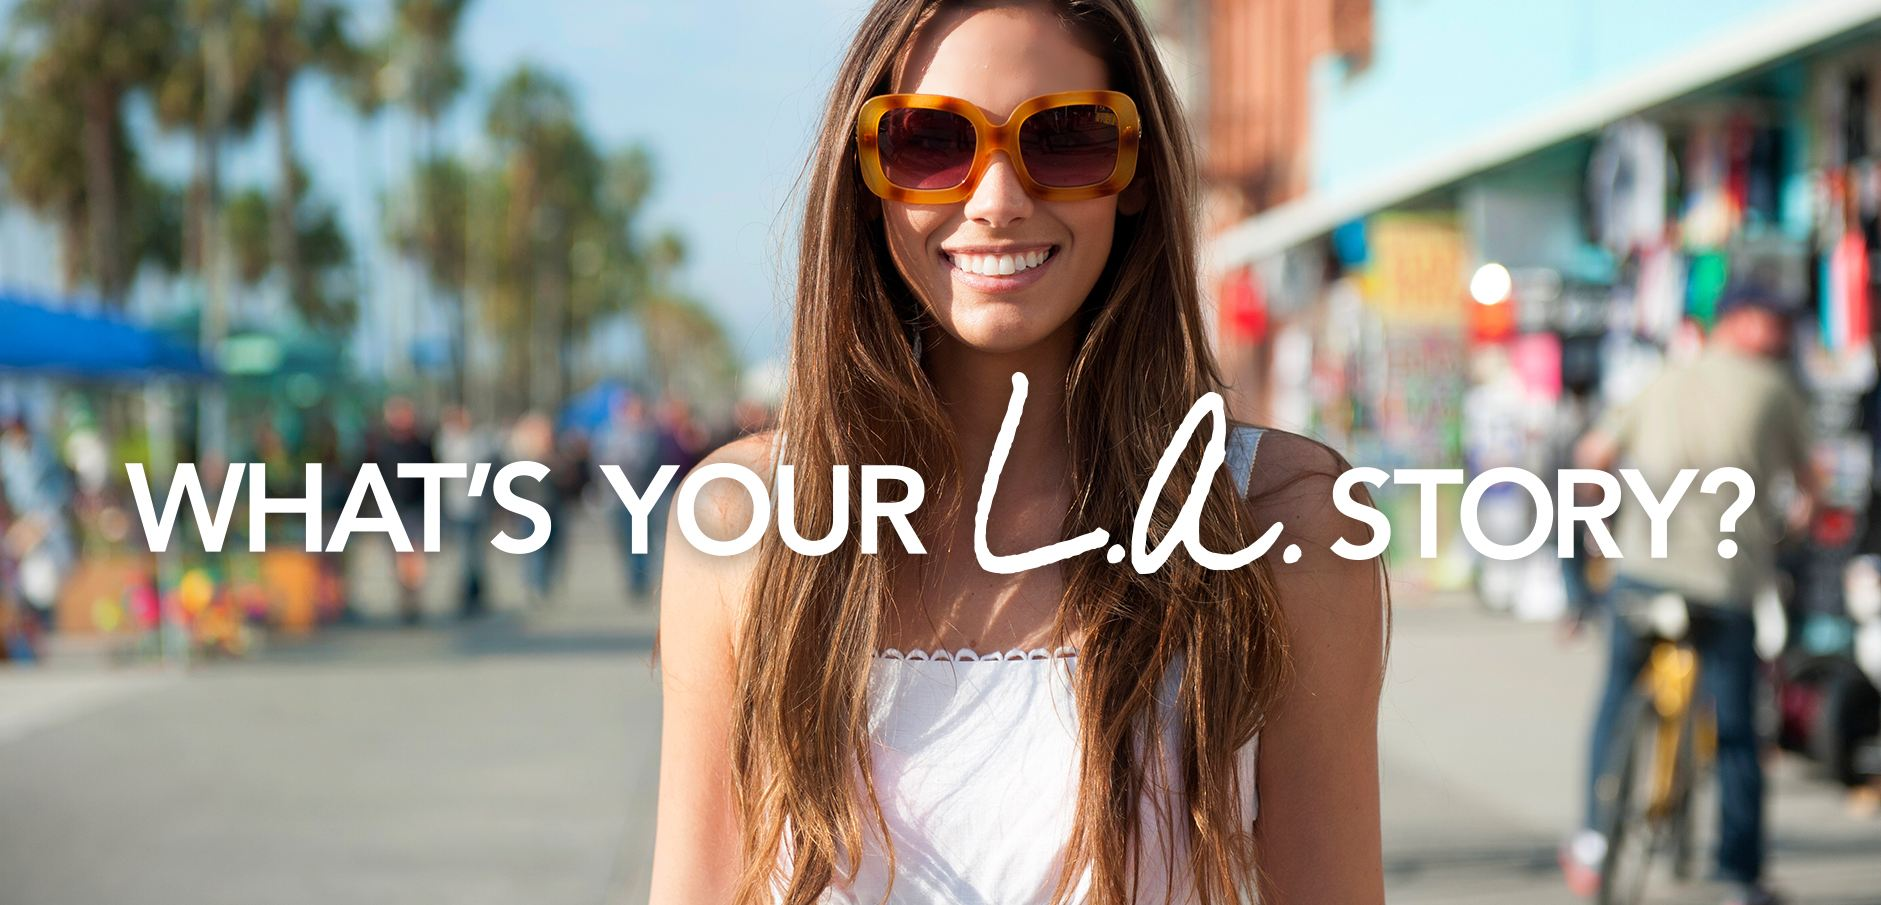 what's your LA story print campaign - girl on Venice boardwalk